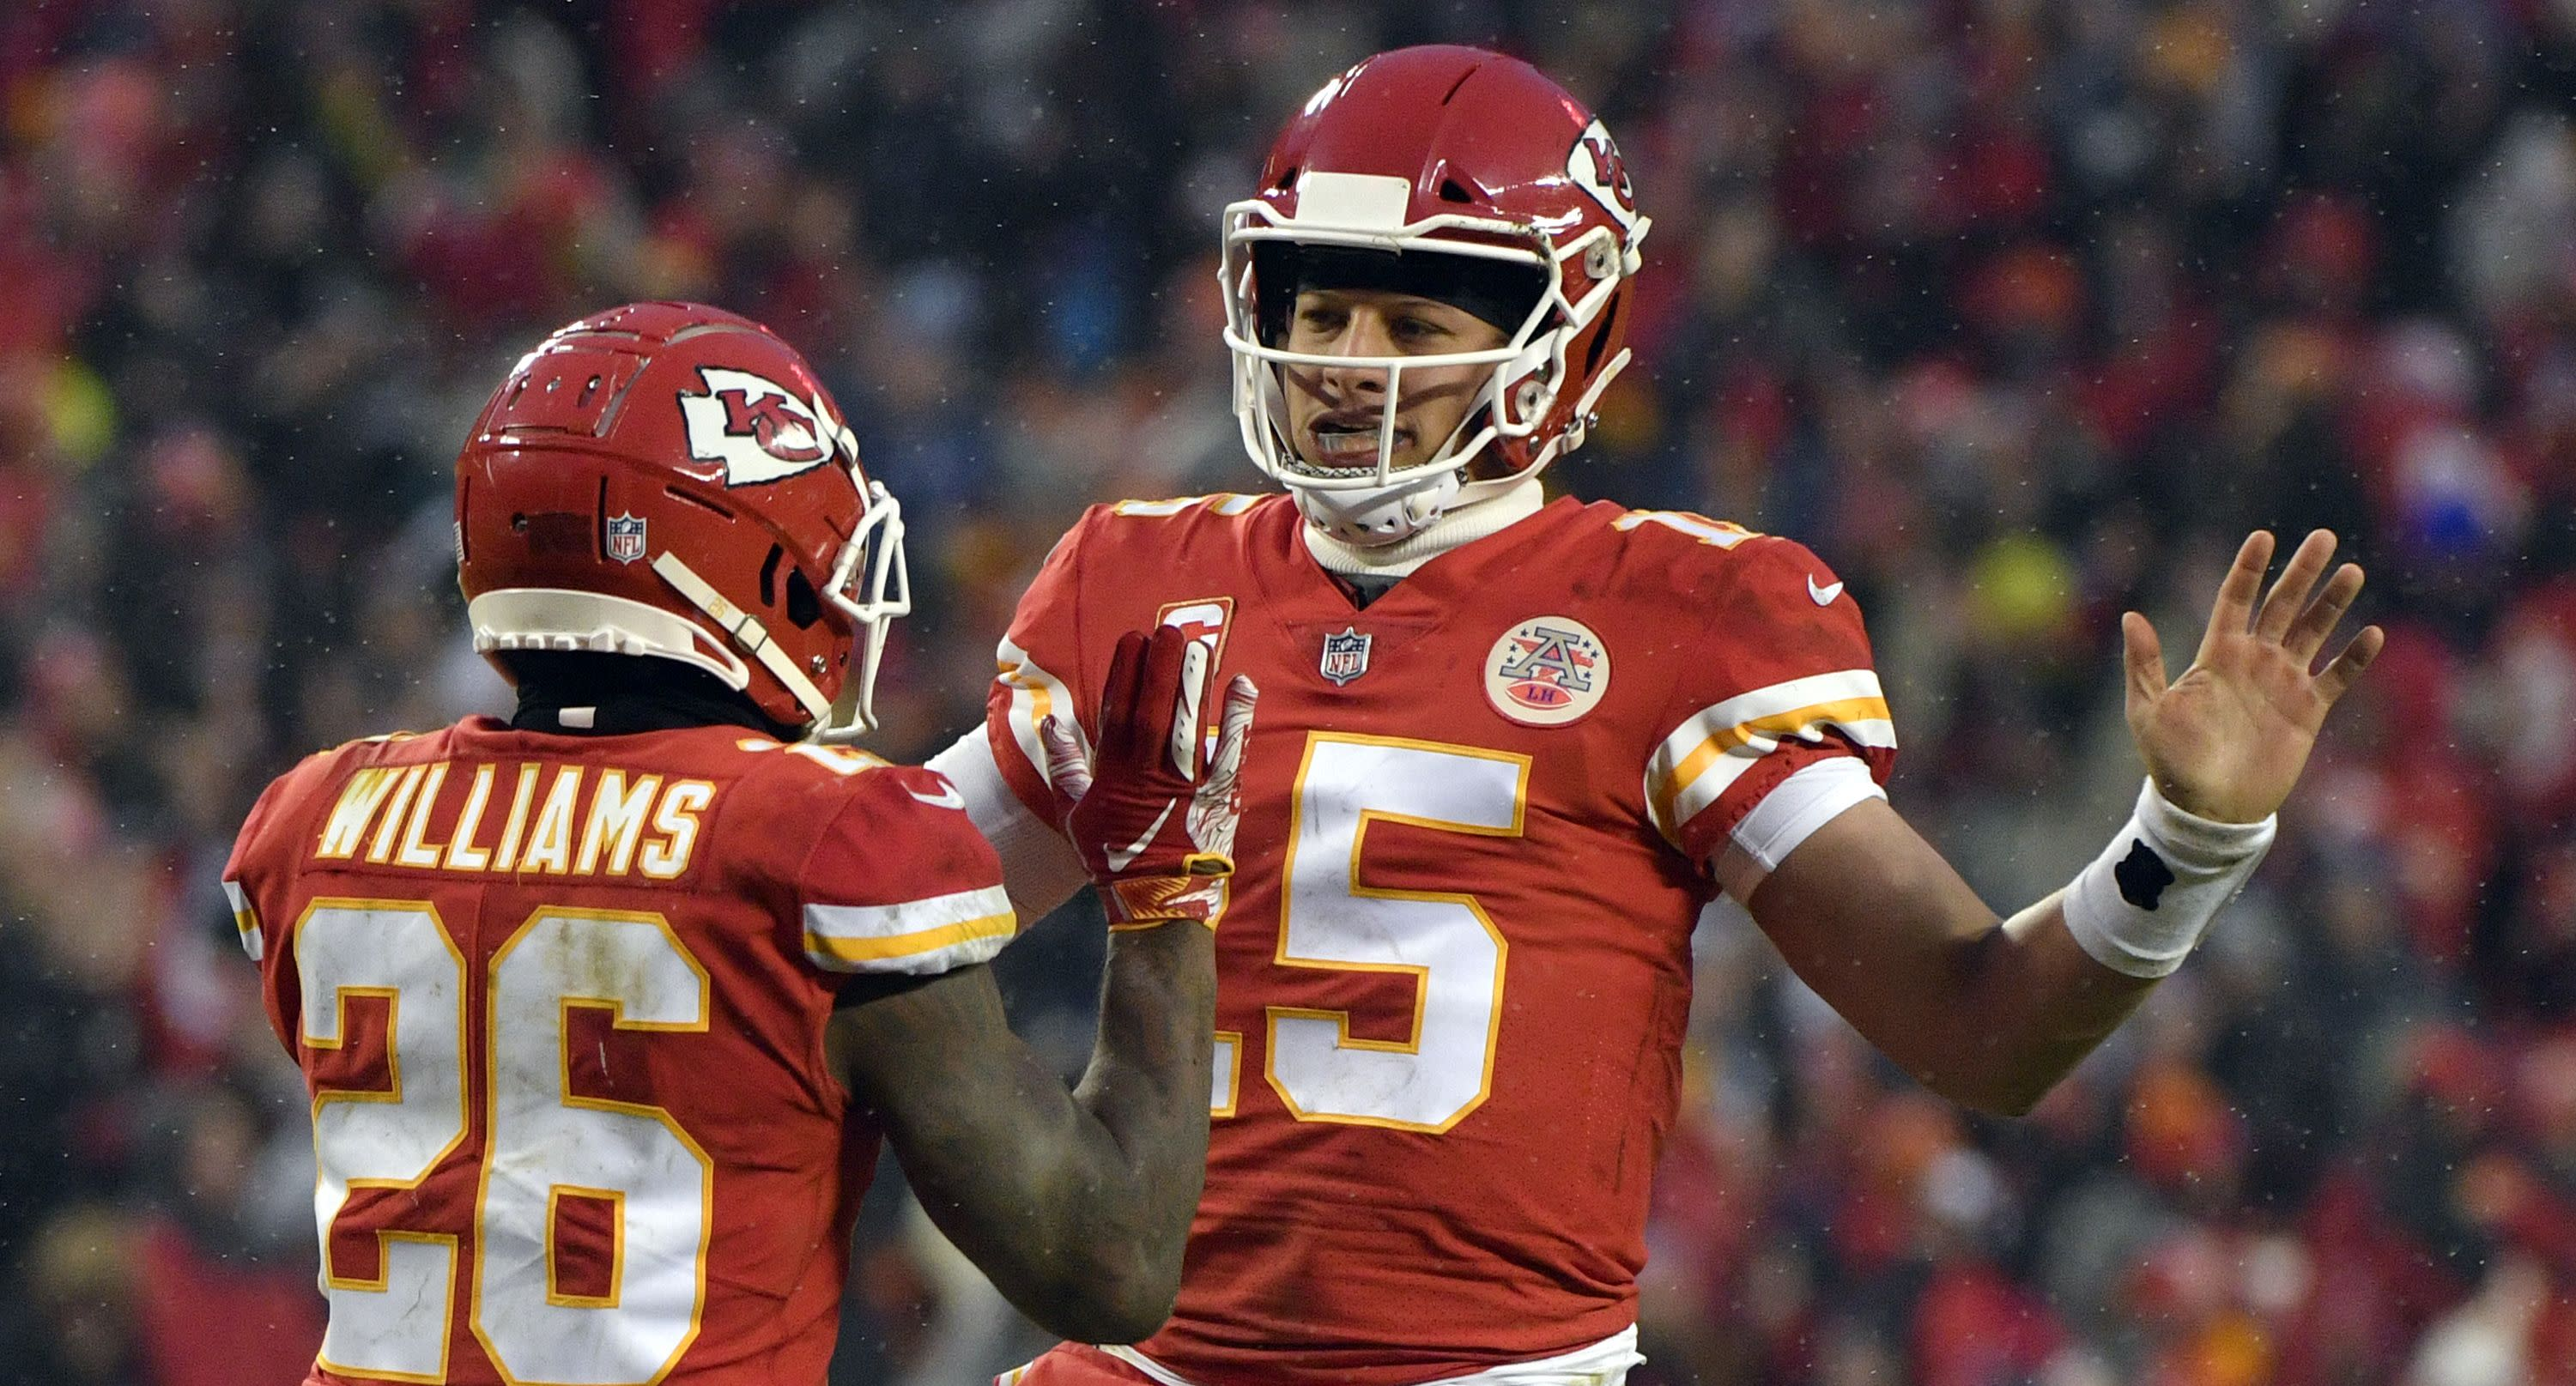 Chiefs erase playoff demons with authority